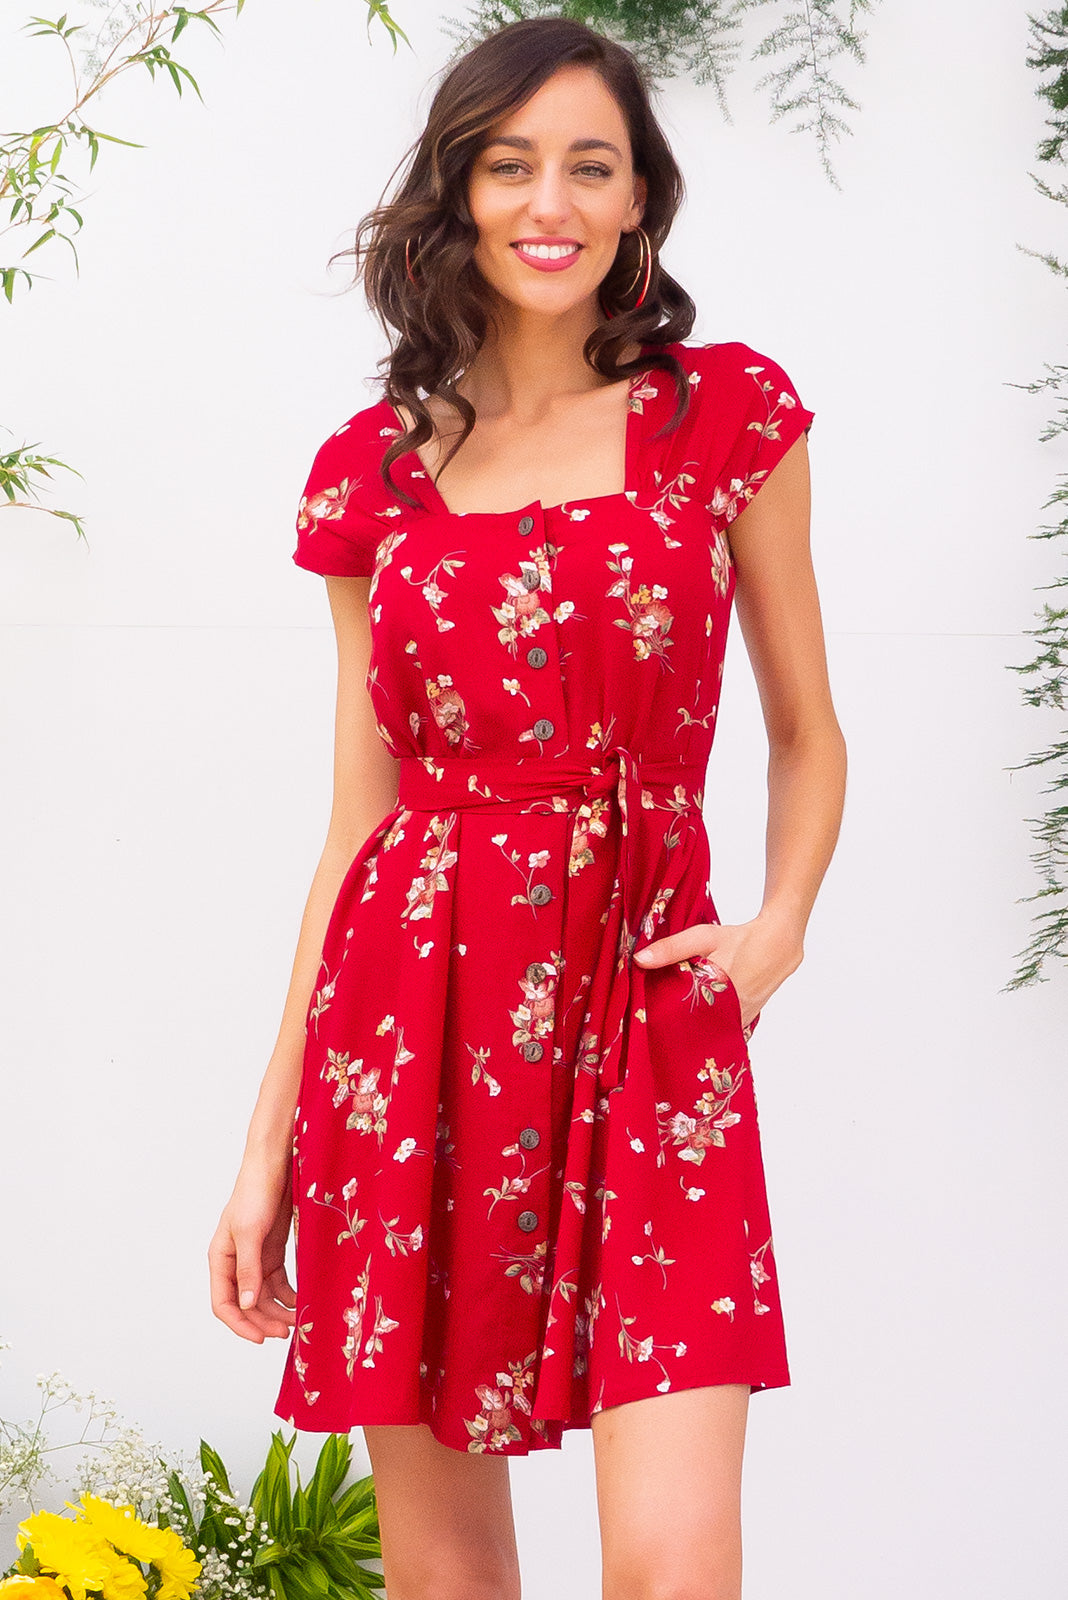 Etta Red Daze Dress with a gathered cap sleeve, full button front and deep side pockets comes with a self coloured belt and is made from a bright red printed woven 100% rayon